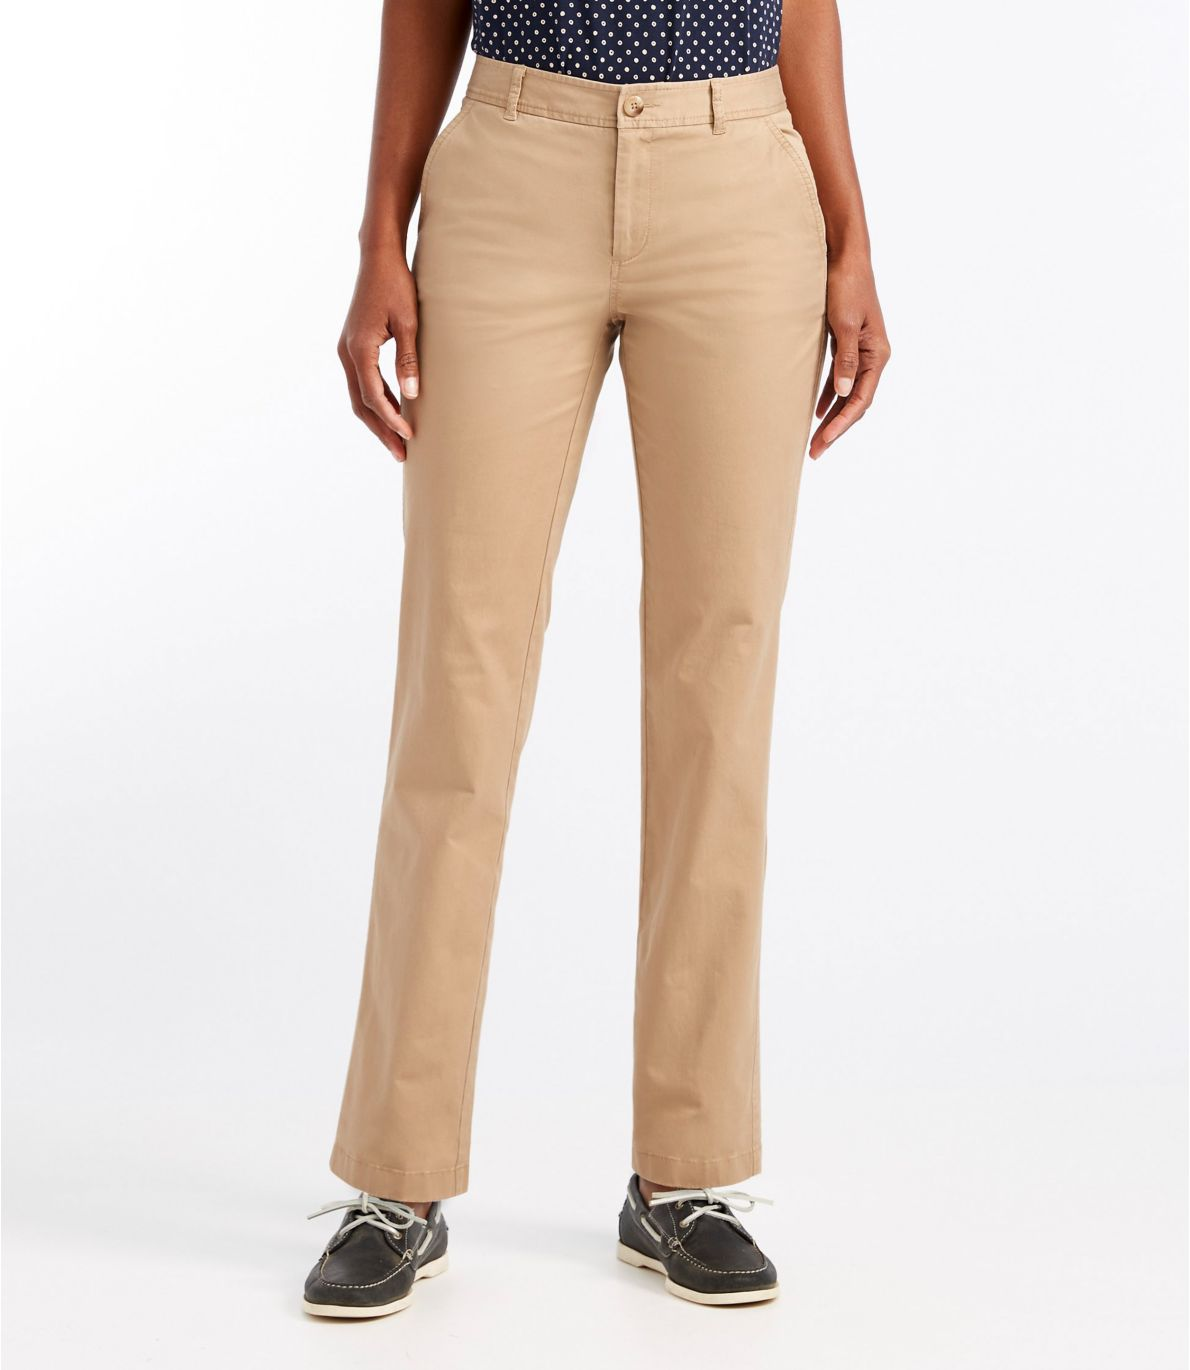 Women's Ultimate Chinos, Favorite Fit Straight-Leg